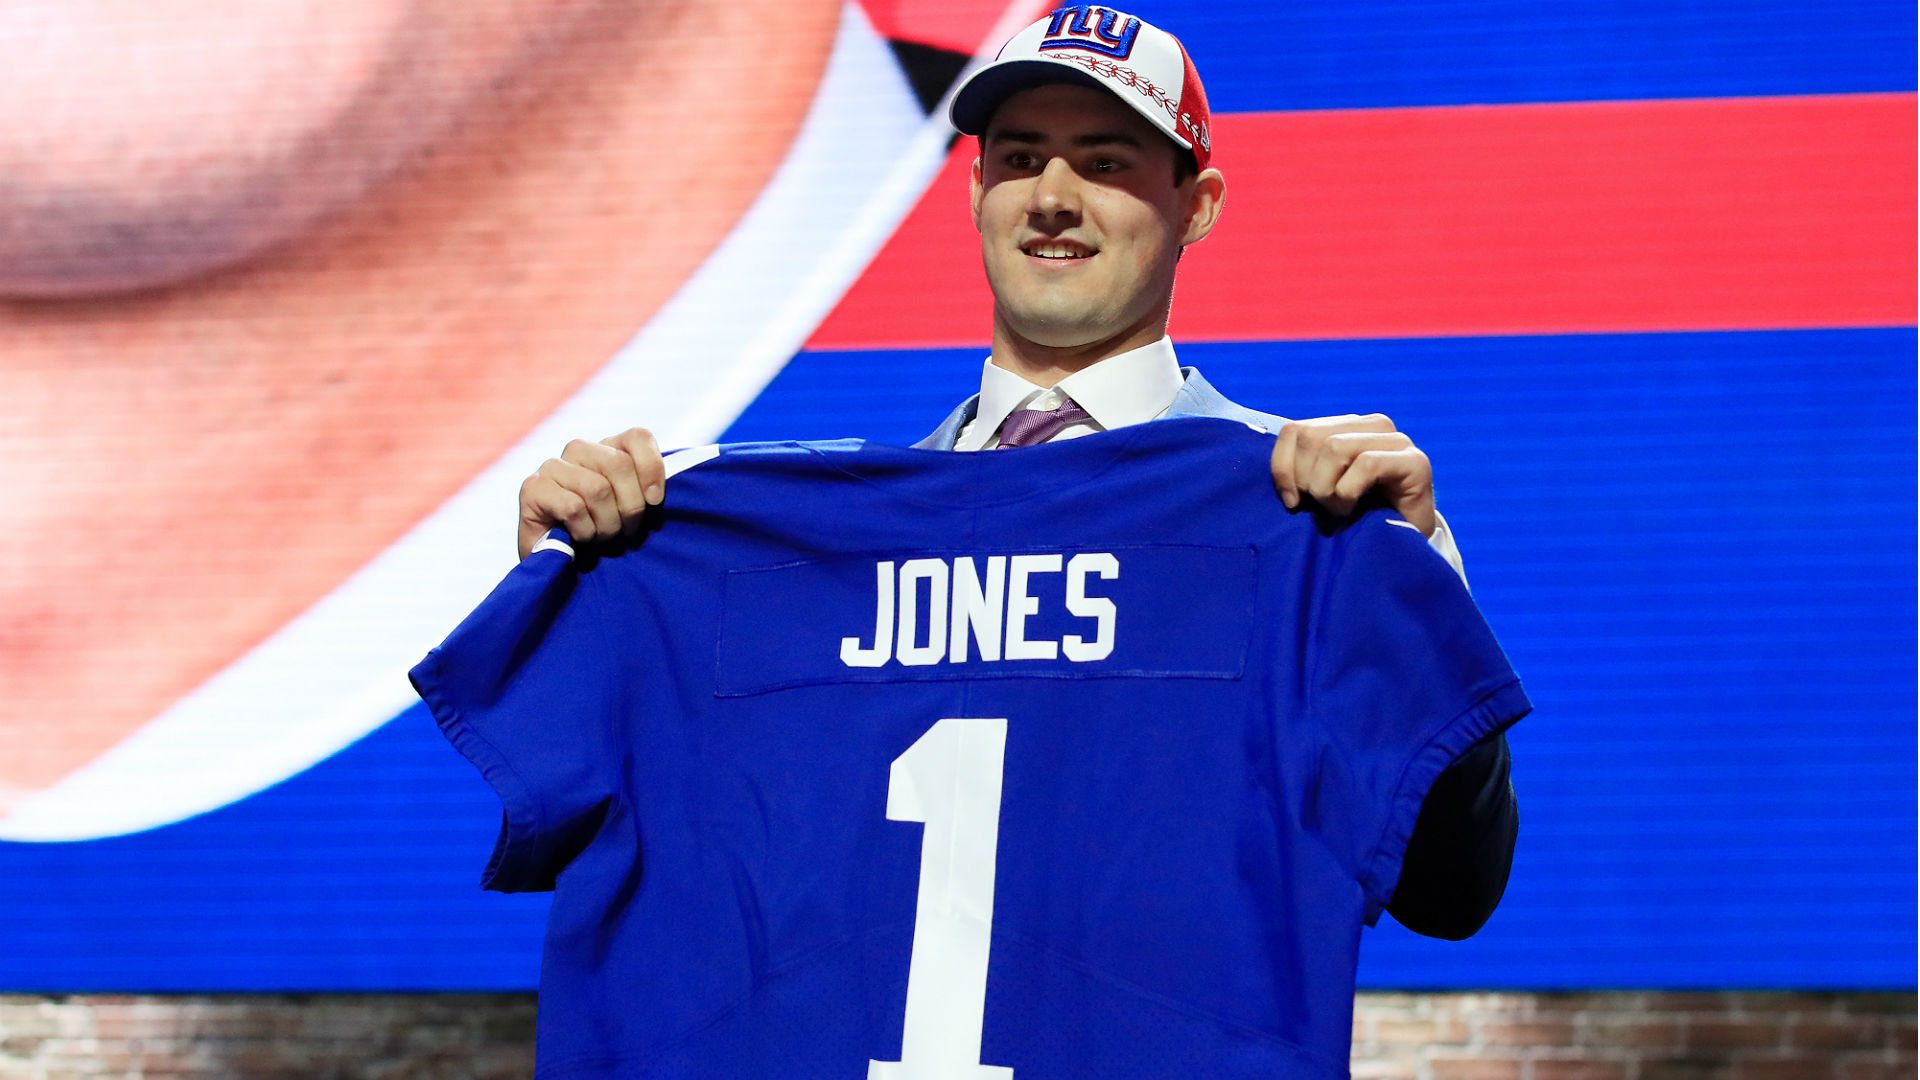 Giants QB Daniel Jones not bothered by boos: 'I'm focused'